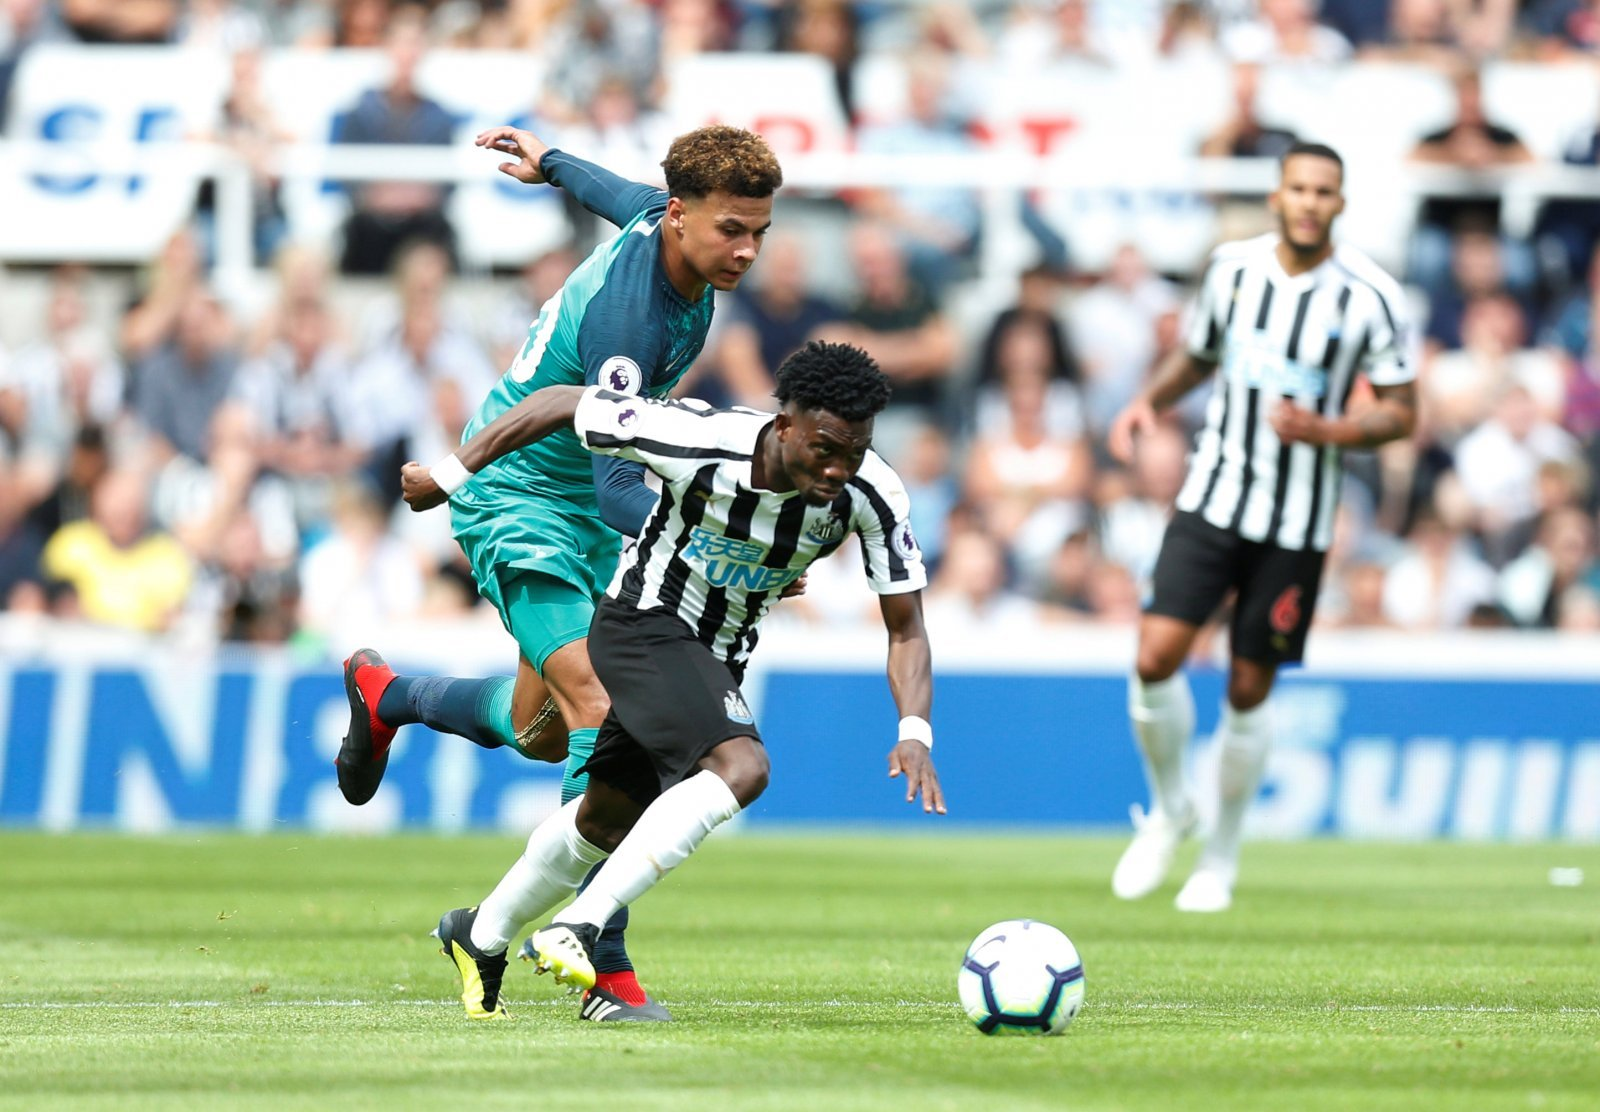 Newcastle fans are spot on: Christian Atsu seriously needs to buck his ideas up